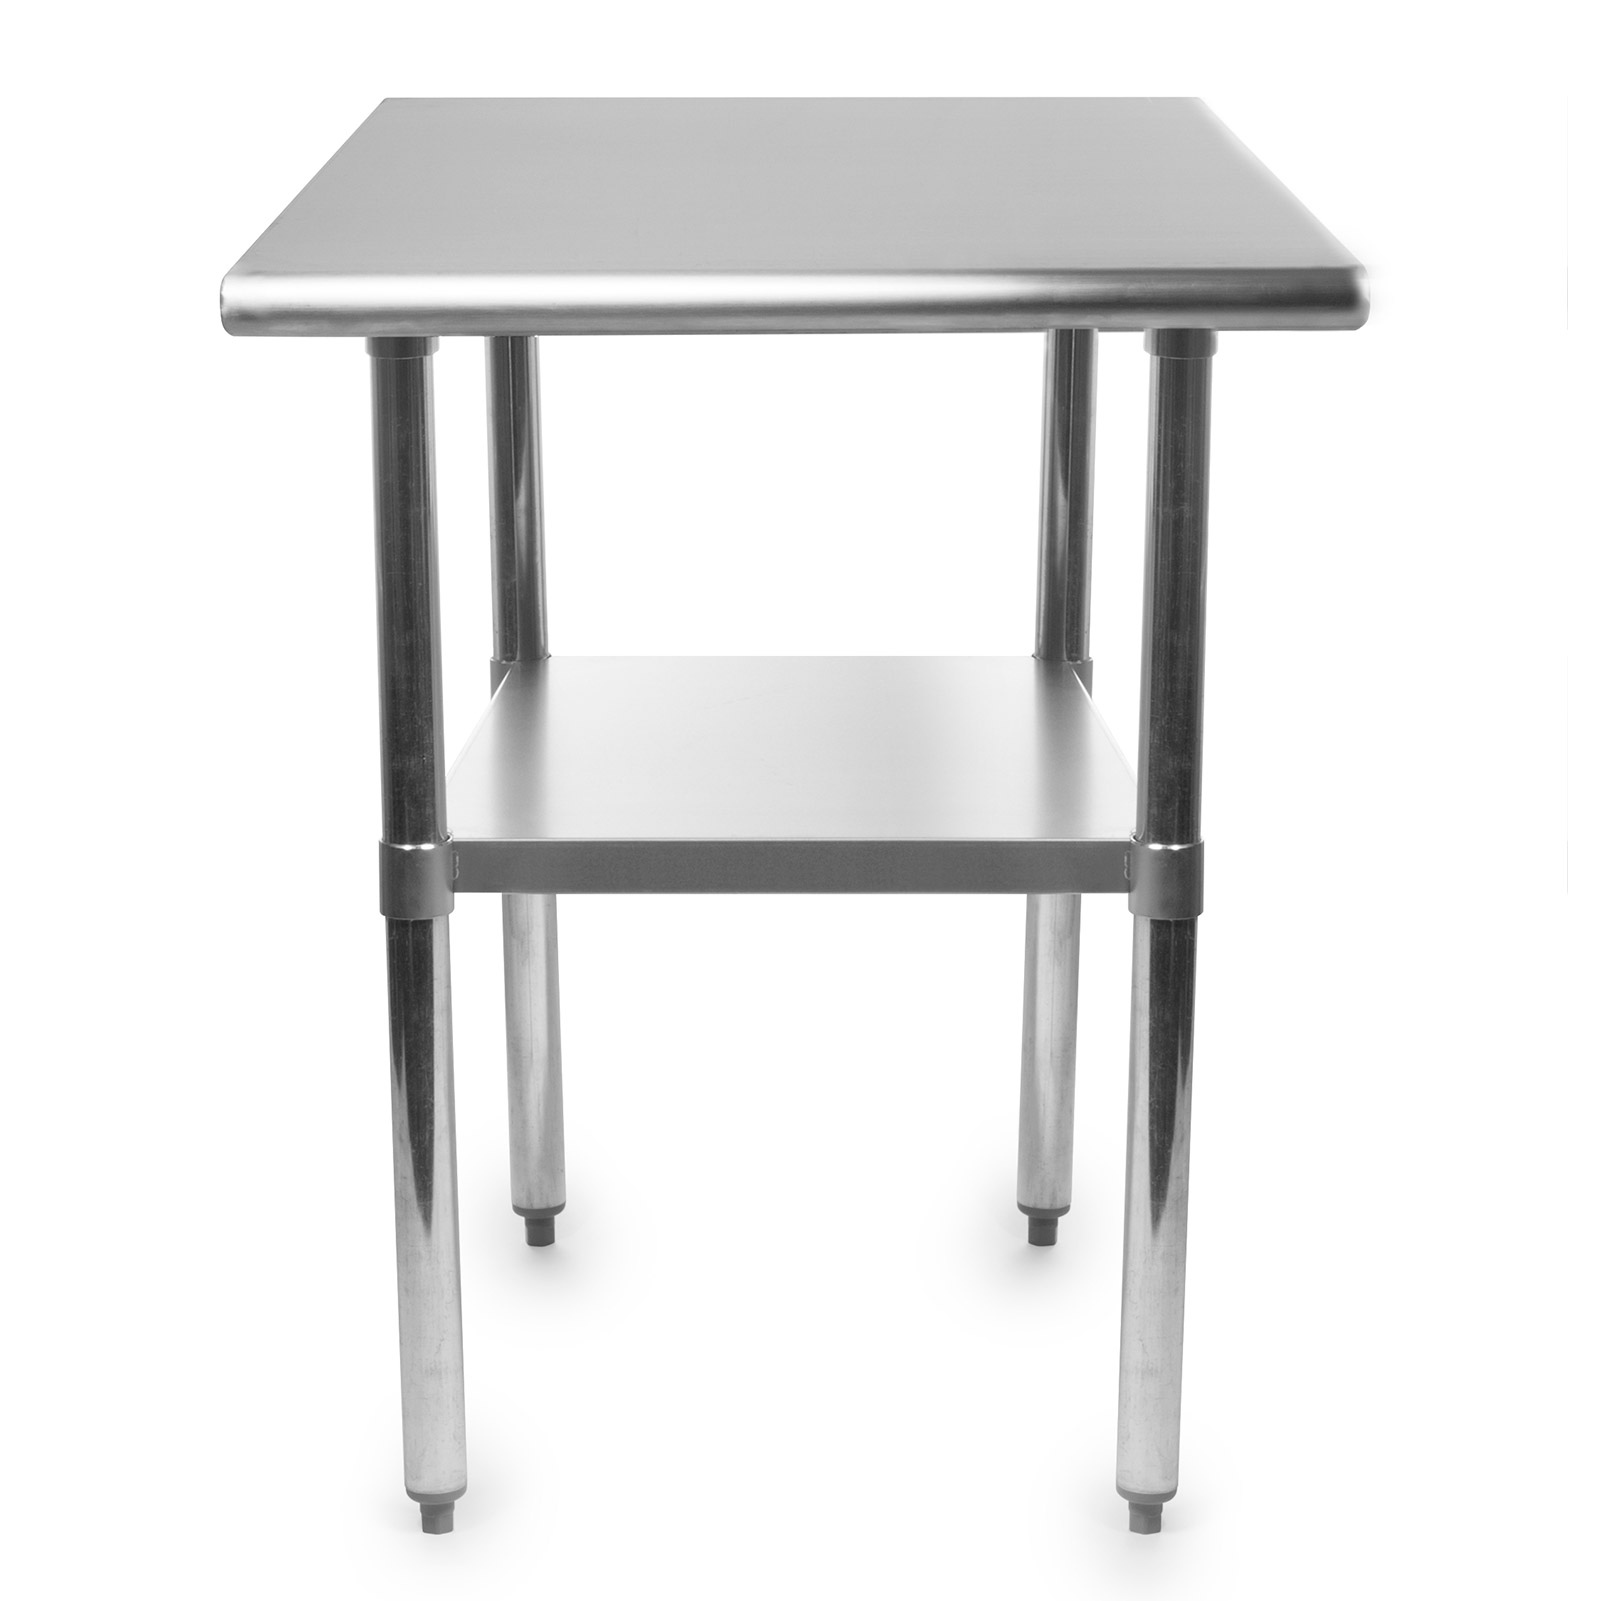 Stainless Steel Kitchen Work Table: Stainless Steel Commercial Kitchen Work Food Prep Table